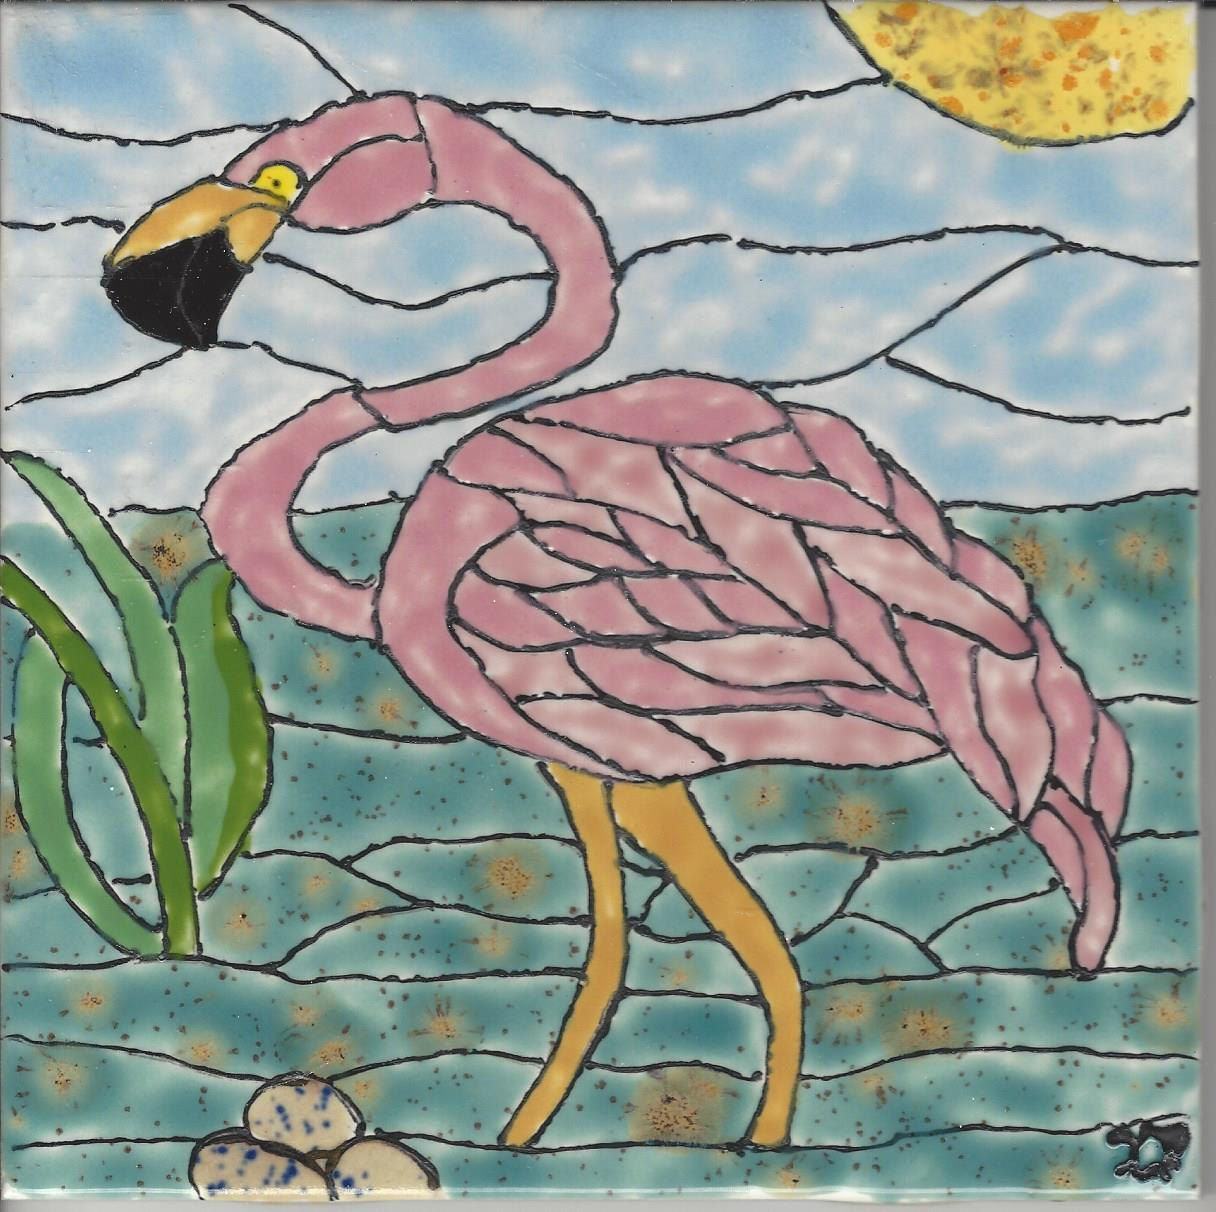 Hand Painted Decorative Ceramic Picture Tiles Classy Flamingo 203 Hand Painted Kiln Fired Decorative Ceramic Wall Art Inspiration Design